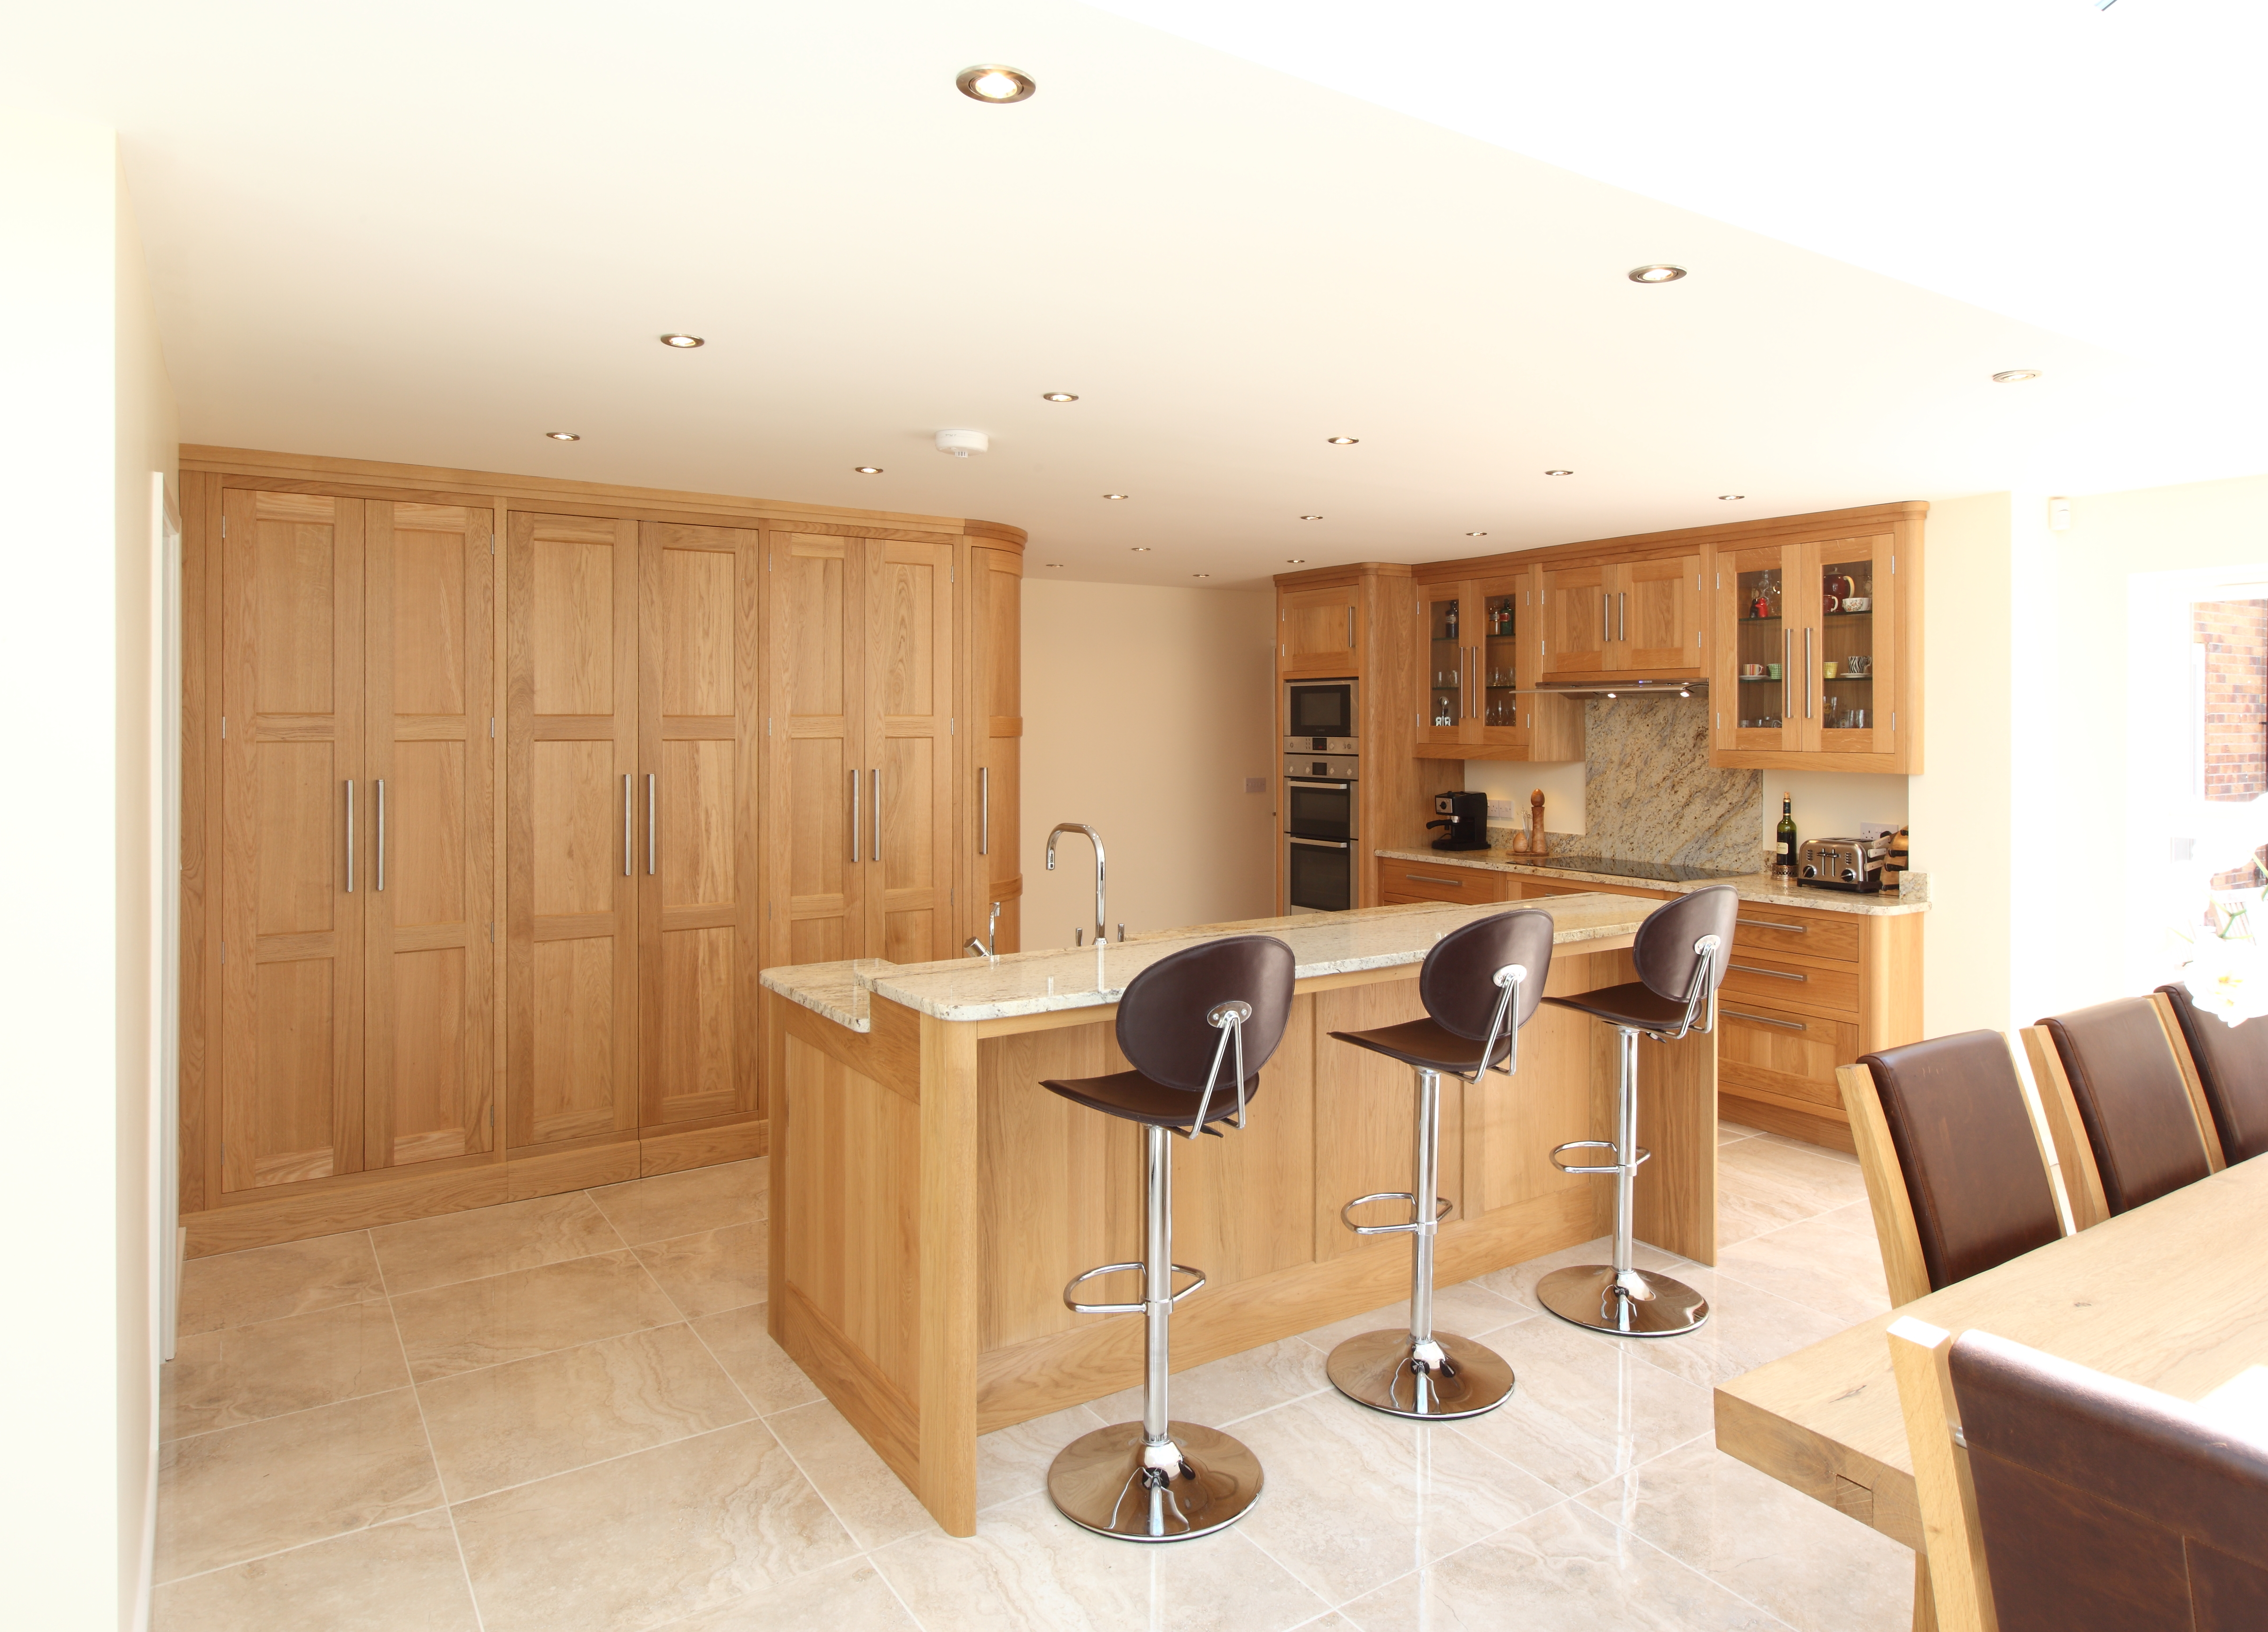 Solid Oak handmade kitchen